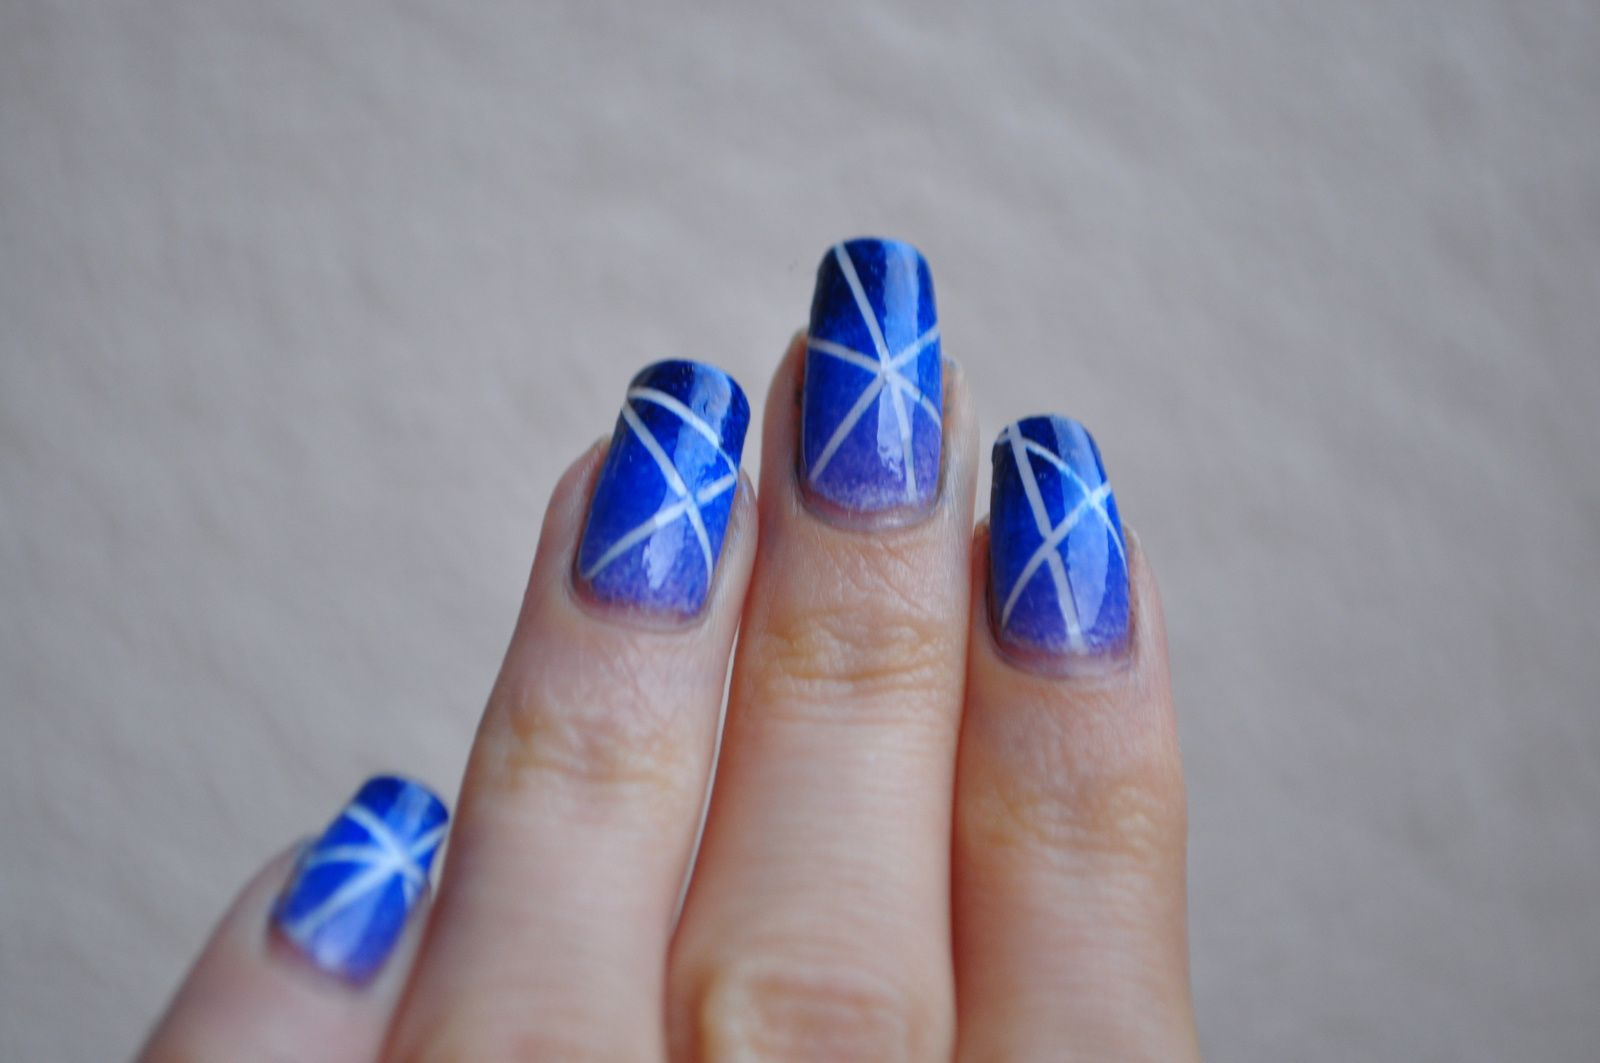 [Nailstoming] Complètement (striping) tapée